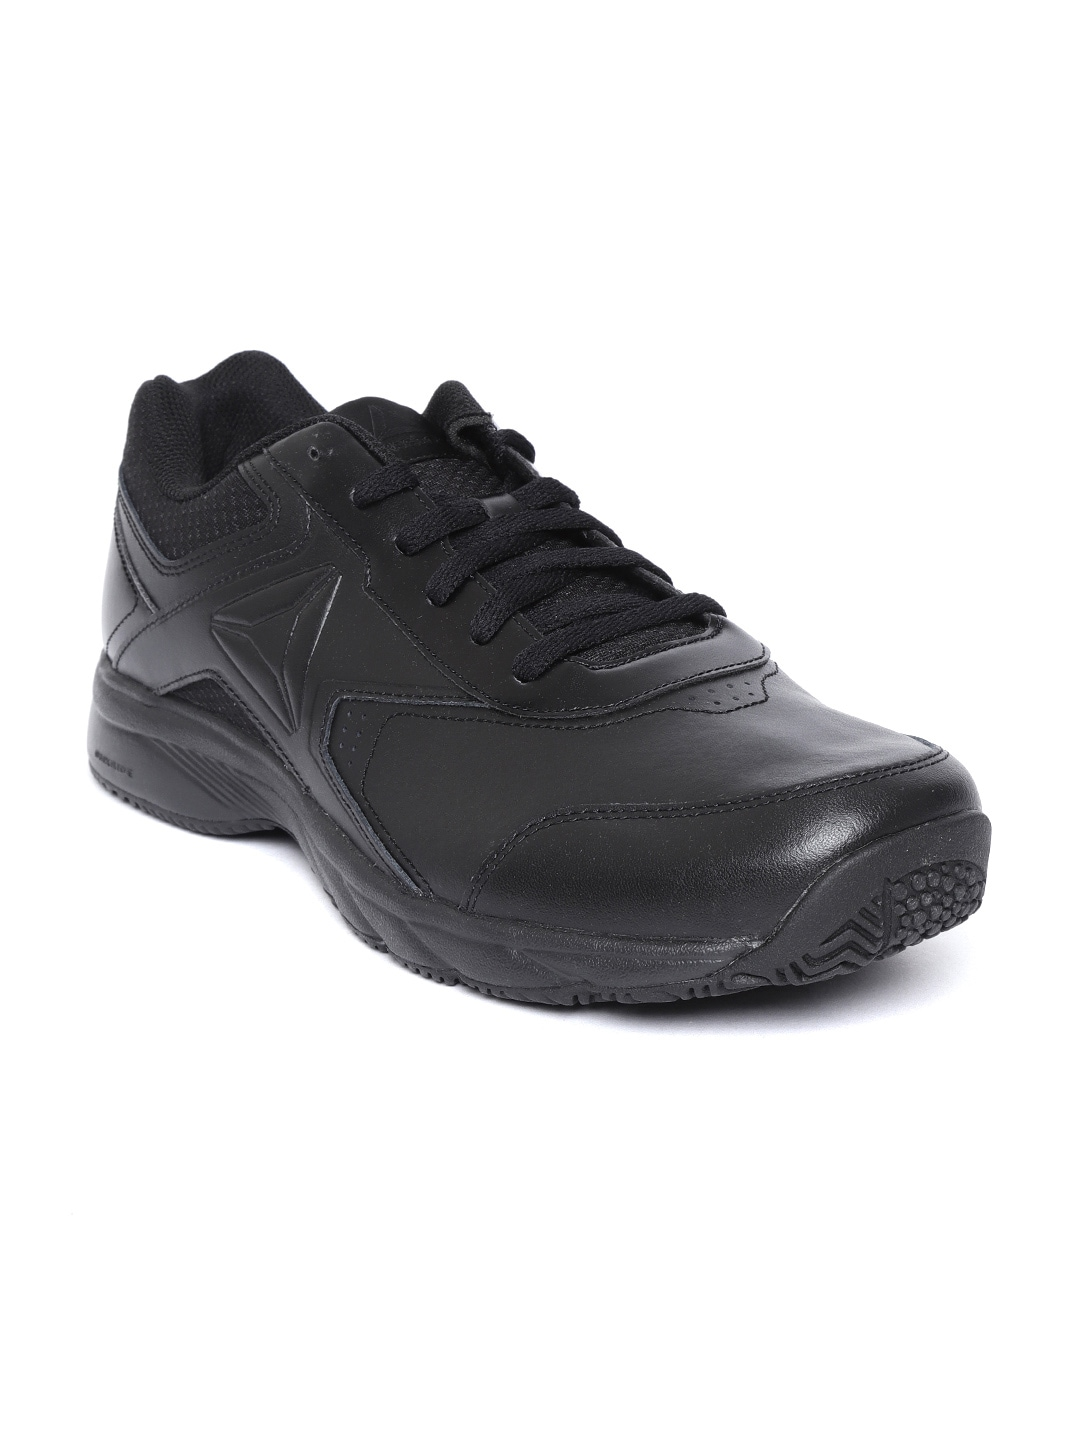 7913bc48e2c24e Reebok Sports Footwear - Buy Reebok Sports Footwear Online in India